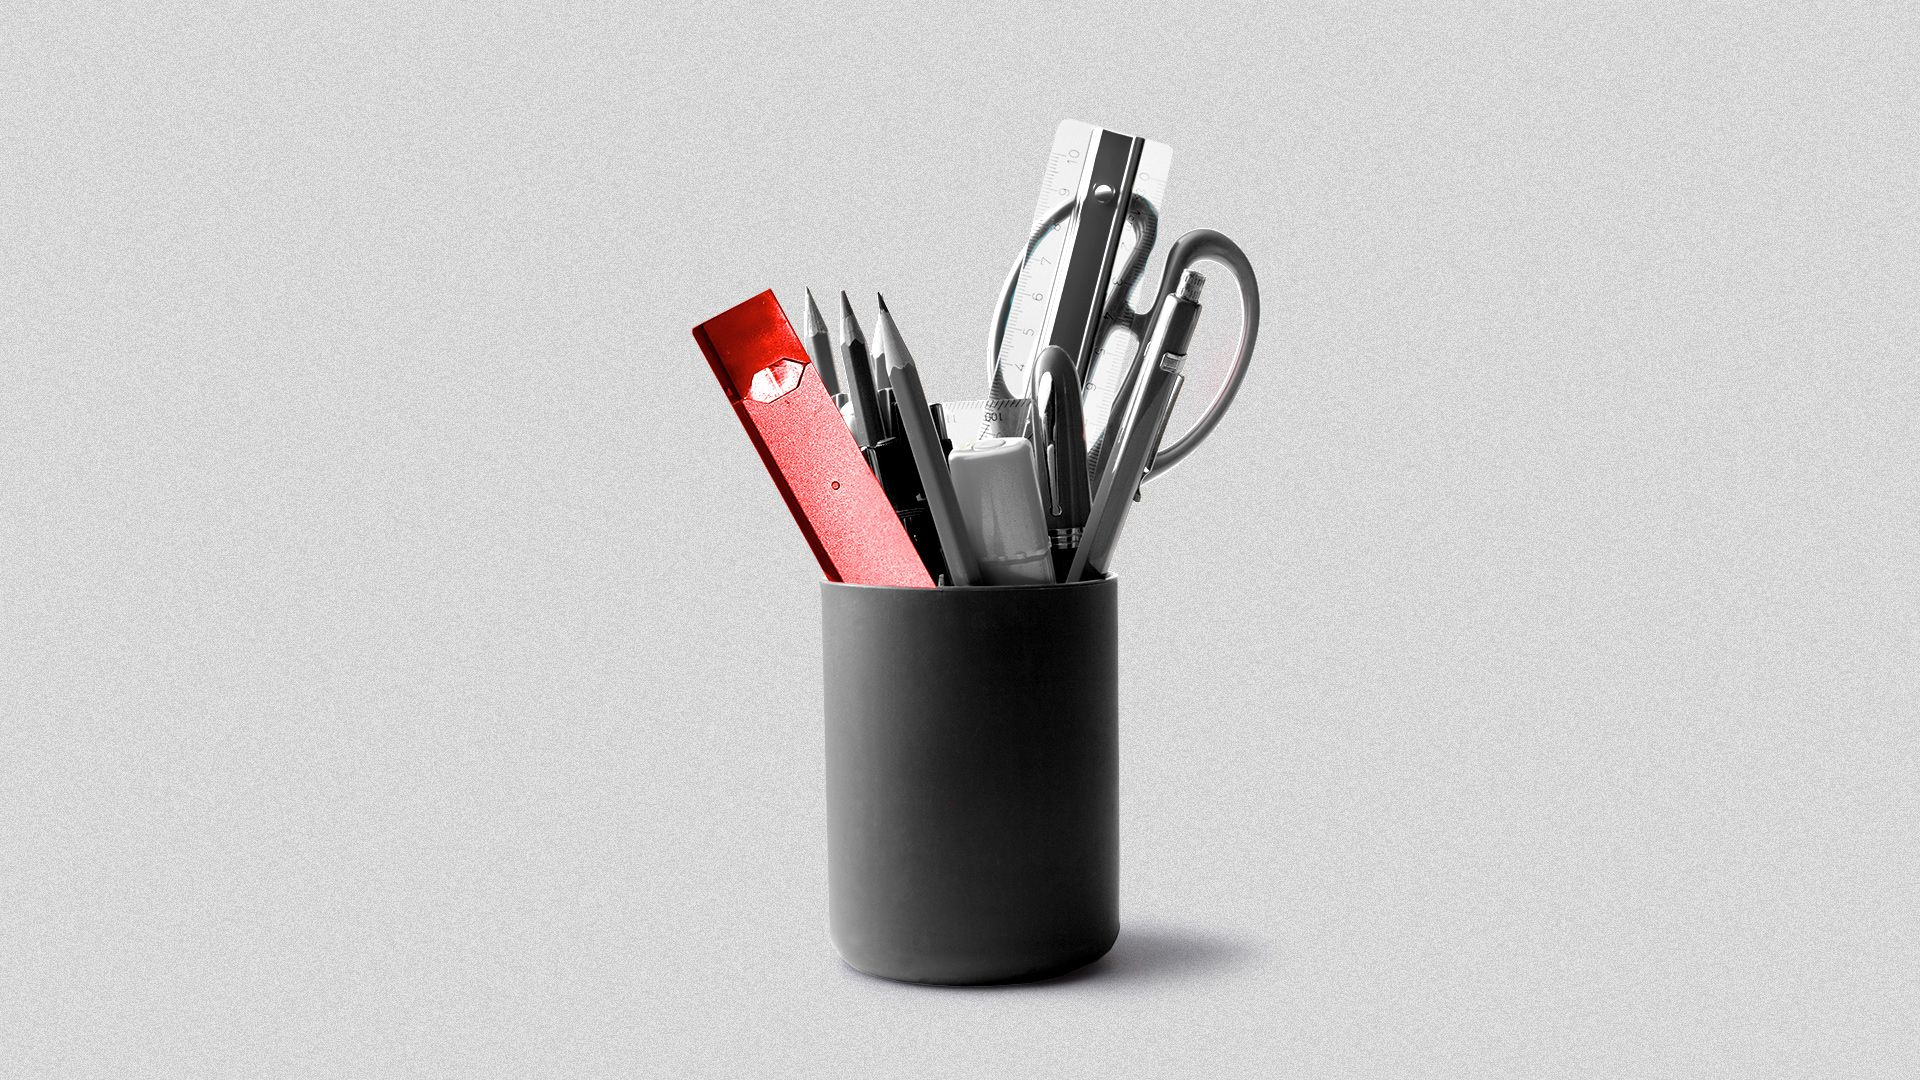 Illustration of a cup of school supplies with a Juul in the cup